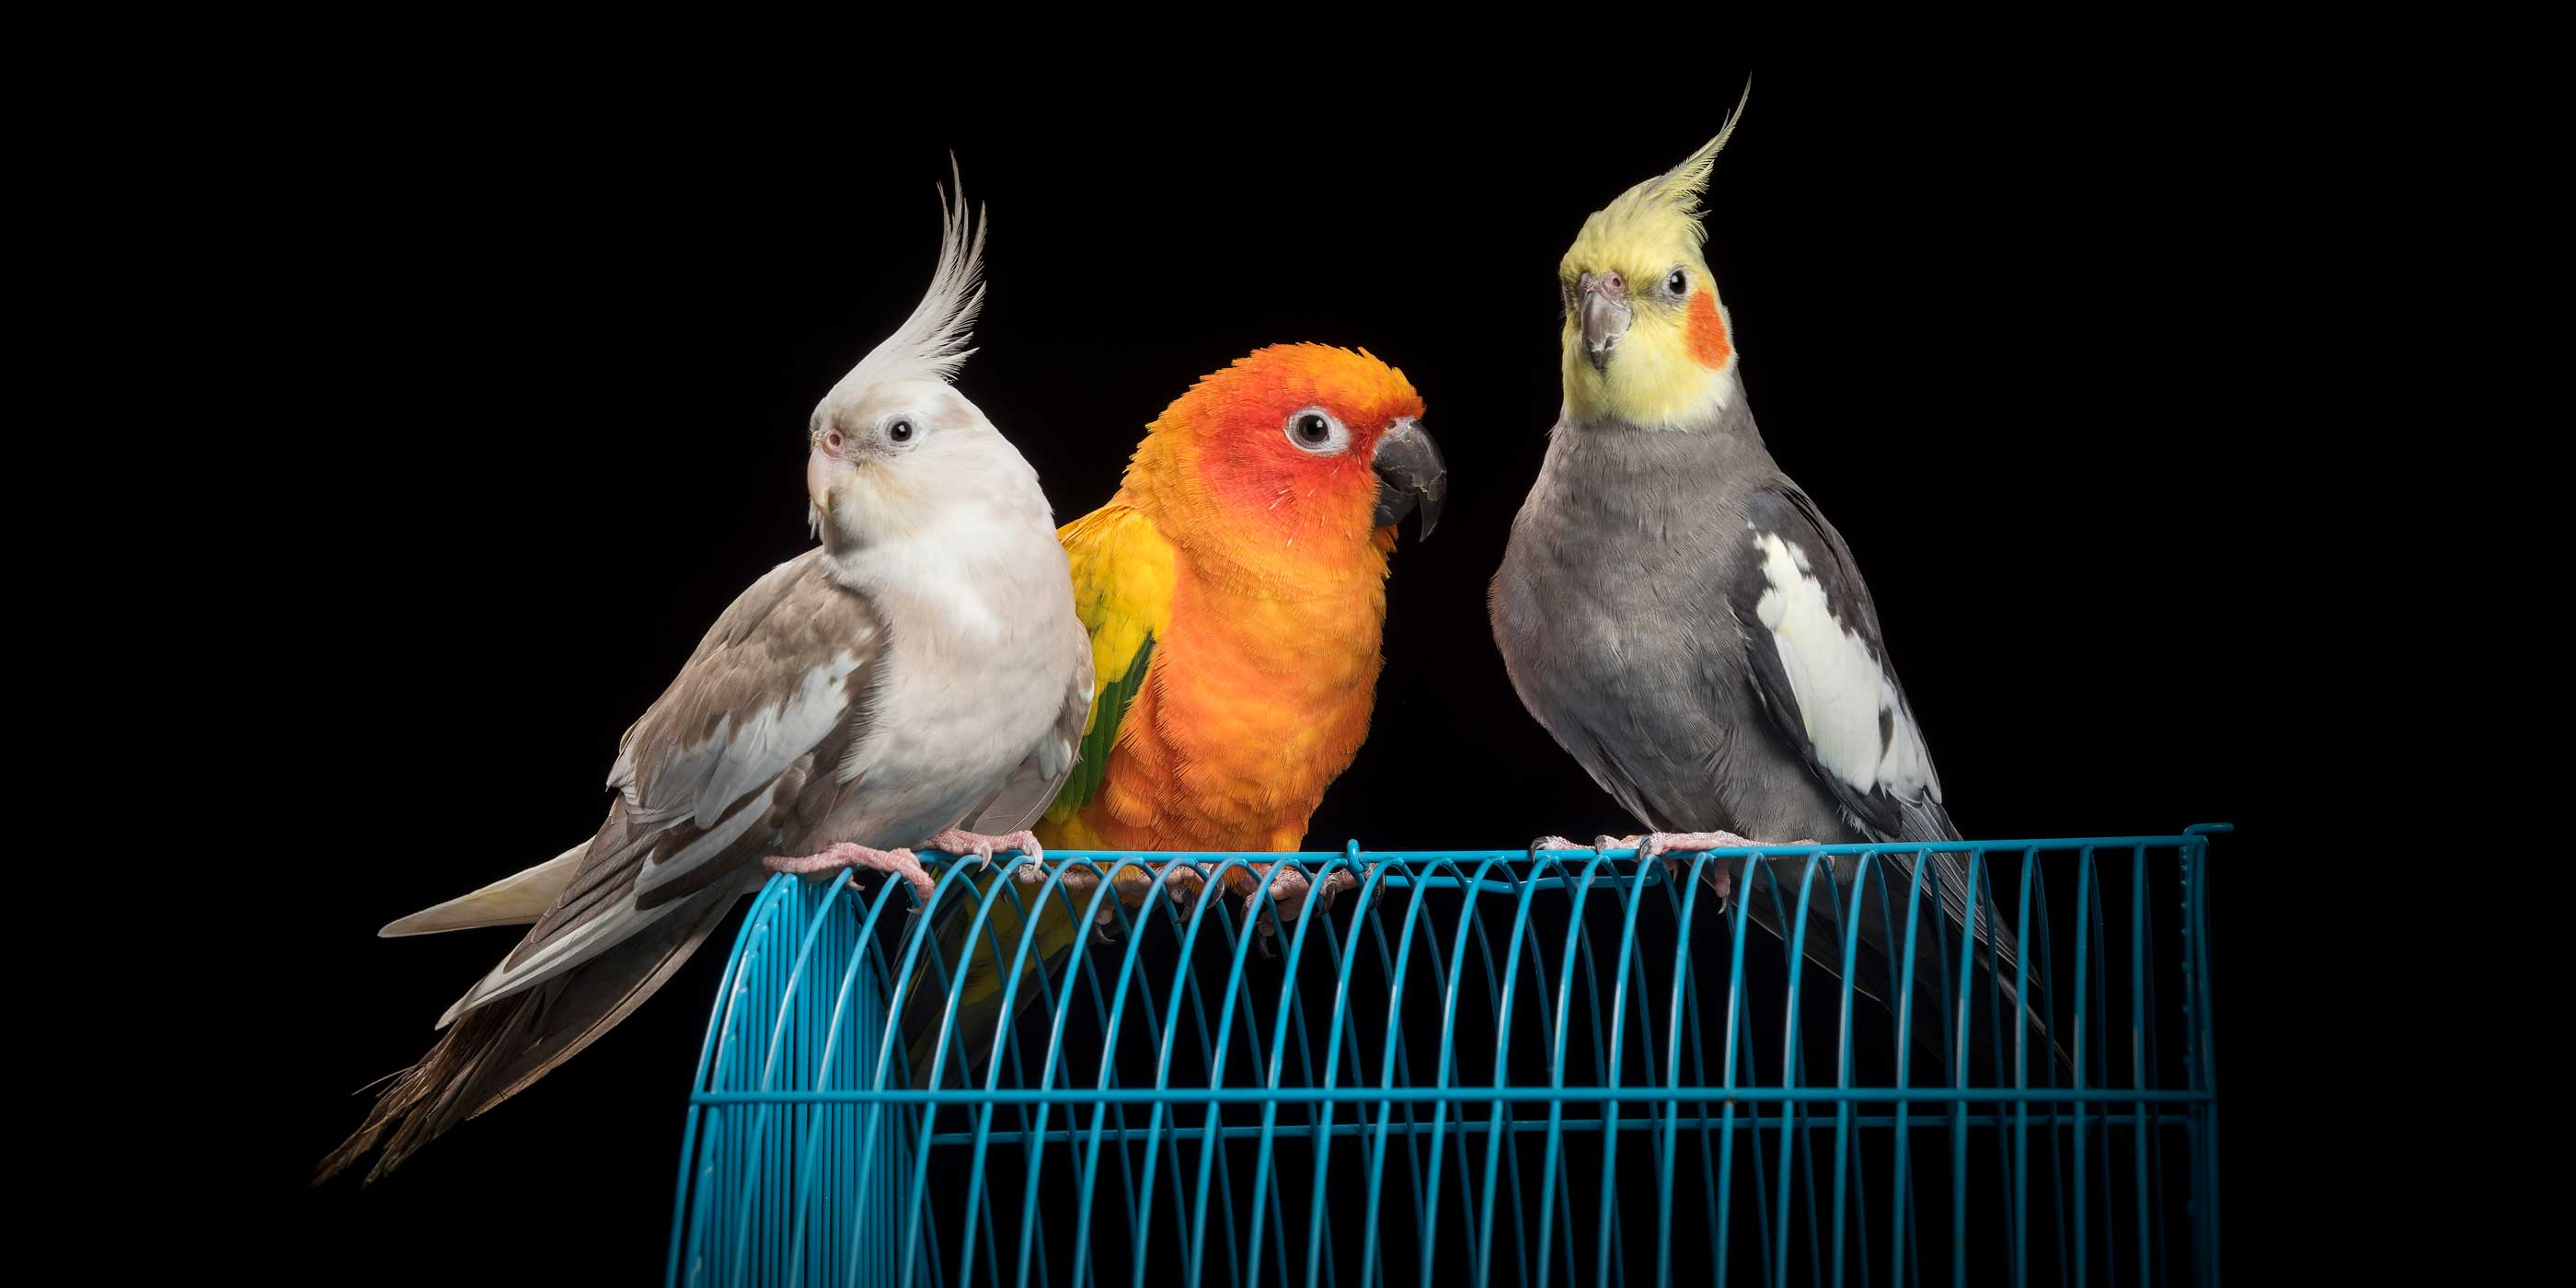 trio of feathered friends sitting on top of cage two cockatiels and sun conure